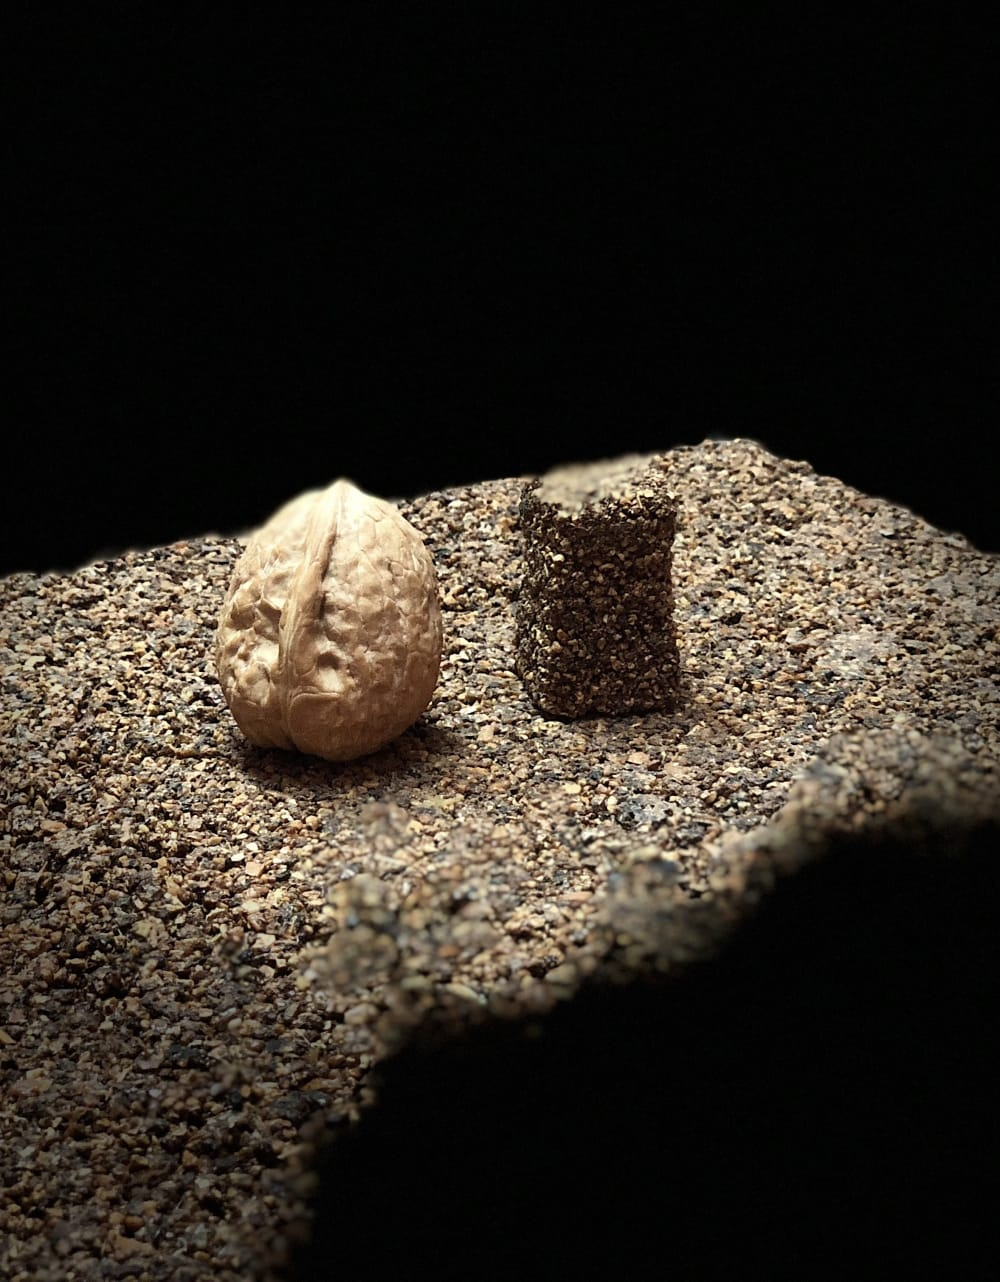 """A piece of Keep Life with a nut on top.<span class=""""sr-only""""> (opened in a new window/tab)</span>"""